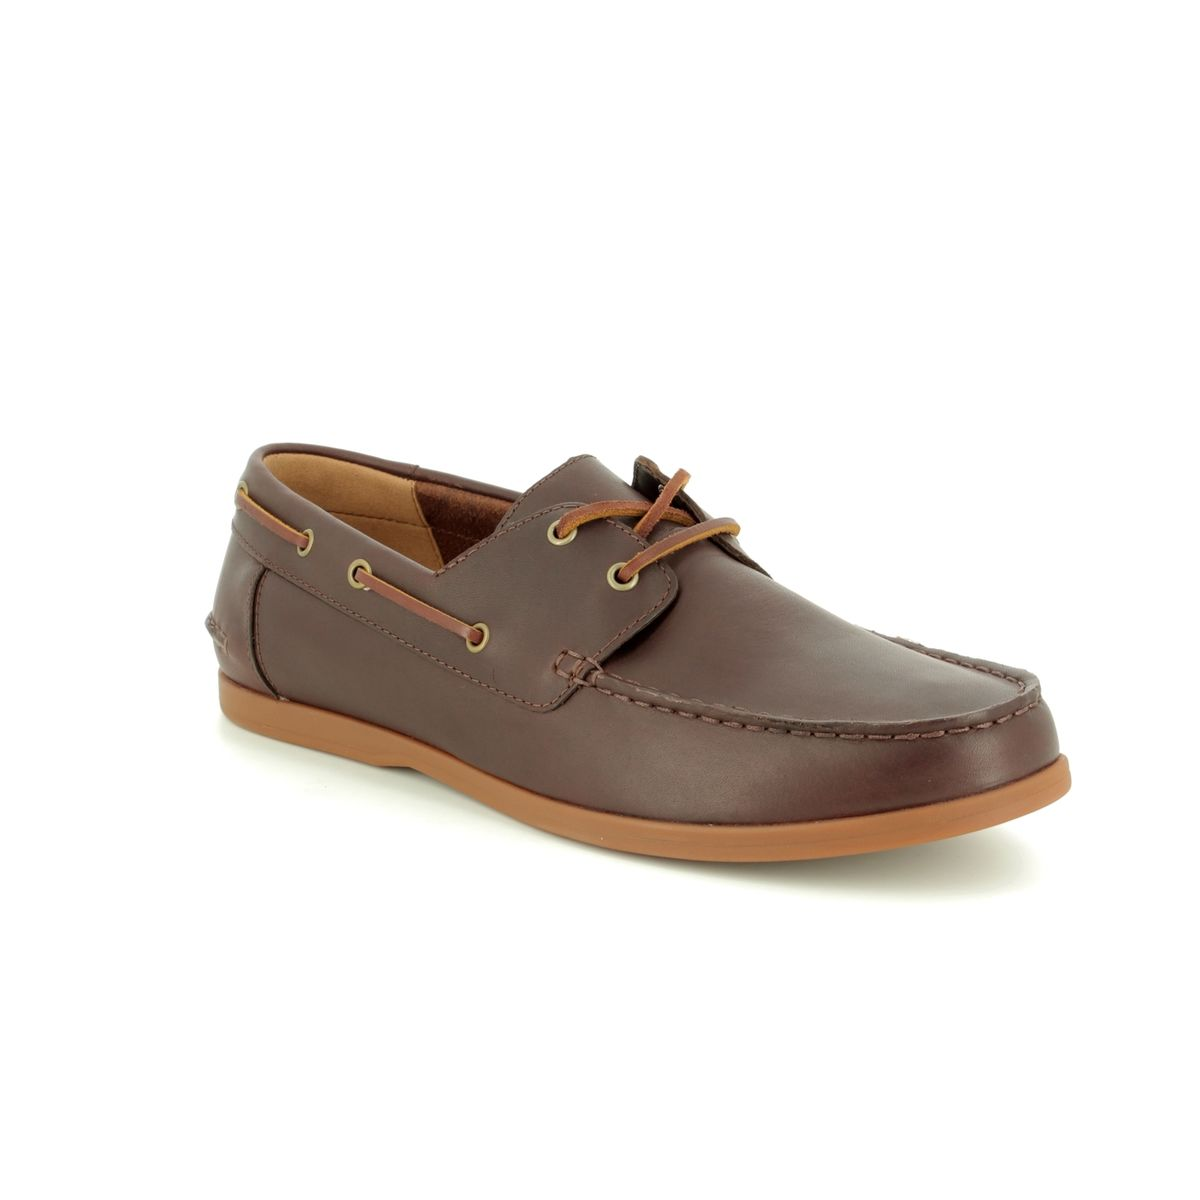 217ab8719dd Clarks Loafers - Tan Leather - 324807G MORVEN SAIL